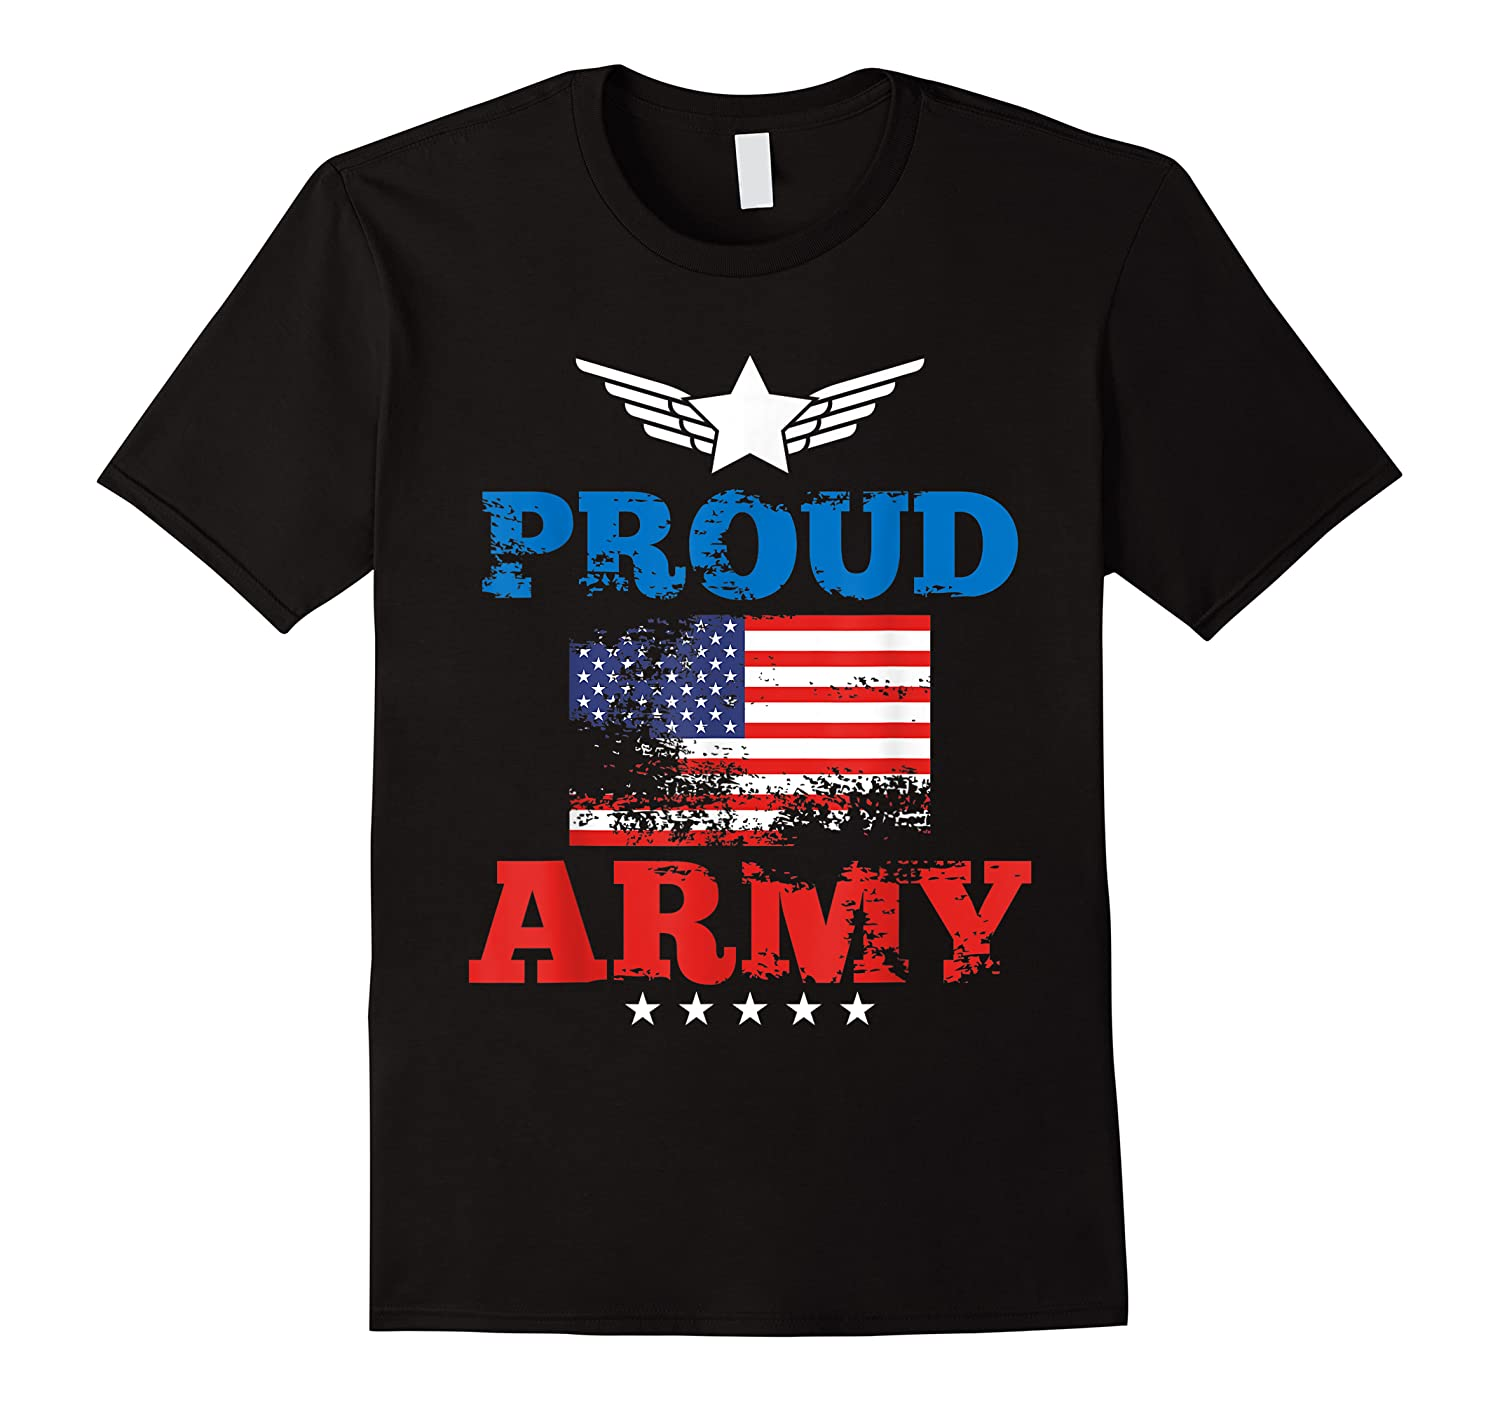 Proud Army American Soldier Air Flag Honor Gift T-shirt